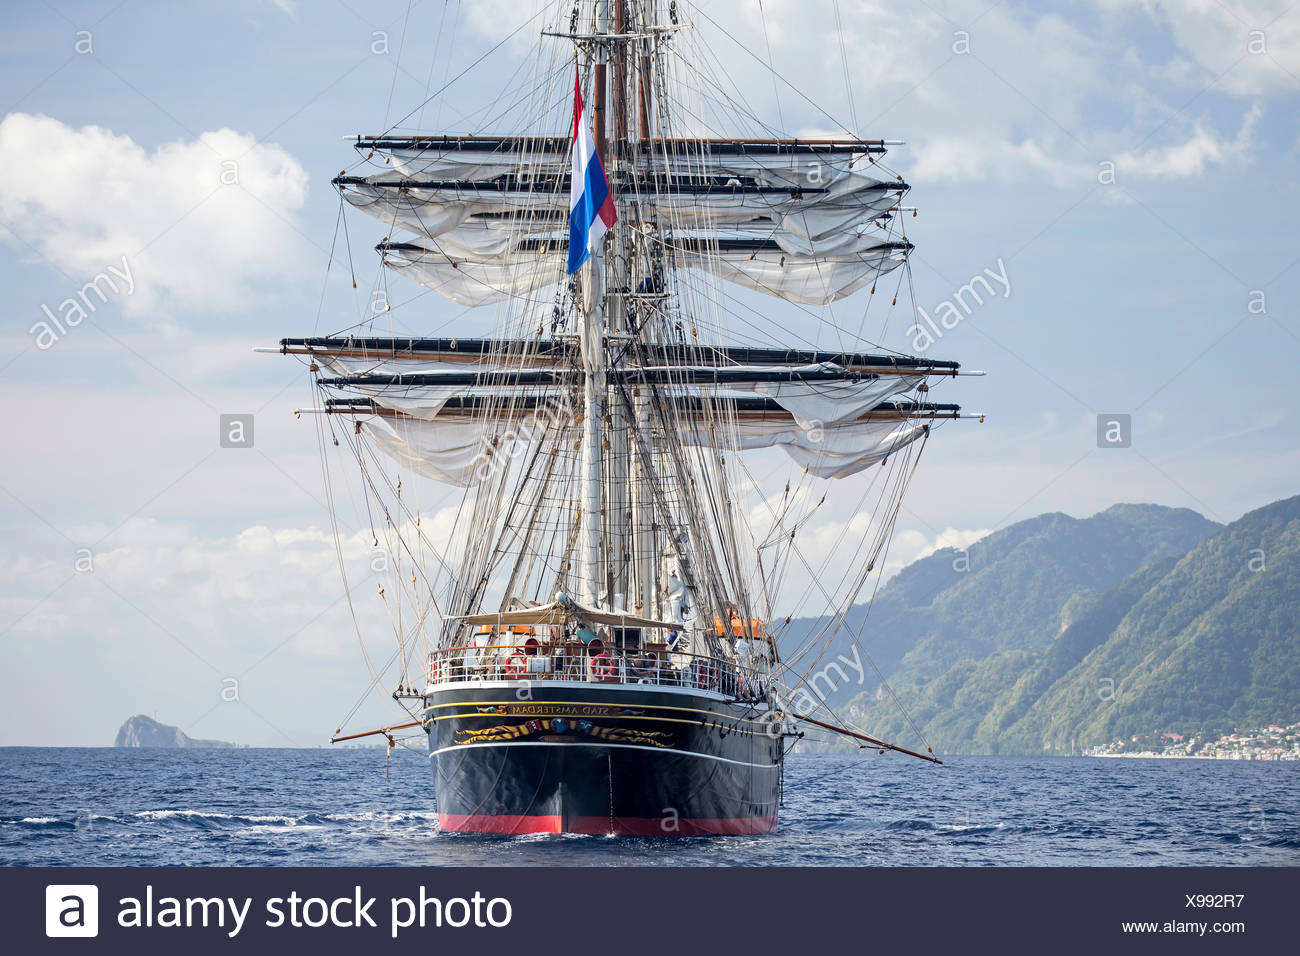 Three-masted clipper cruising ship 'Stad Amsterdam', Dominica, Caribbean Sea, Atlantic Ocean. All non-editorial uses must be cle - Stock Image